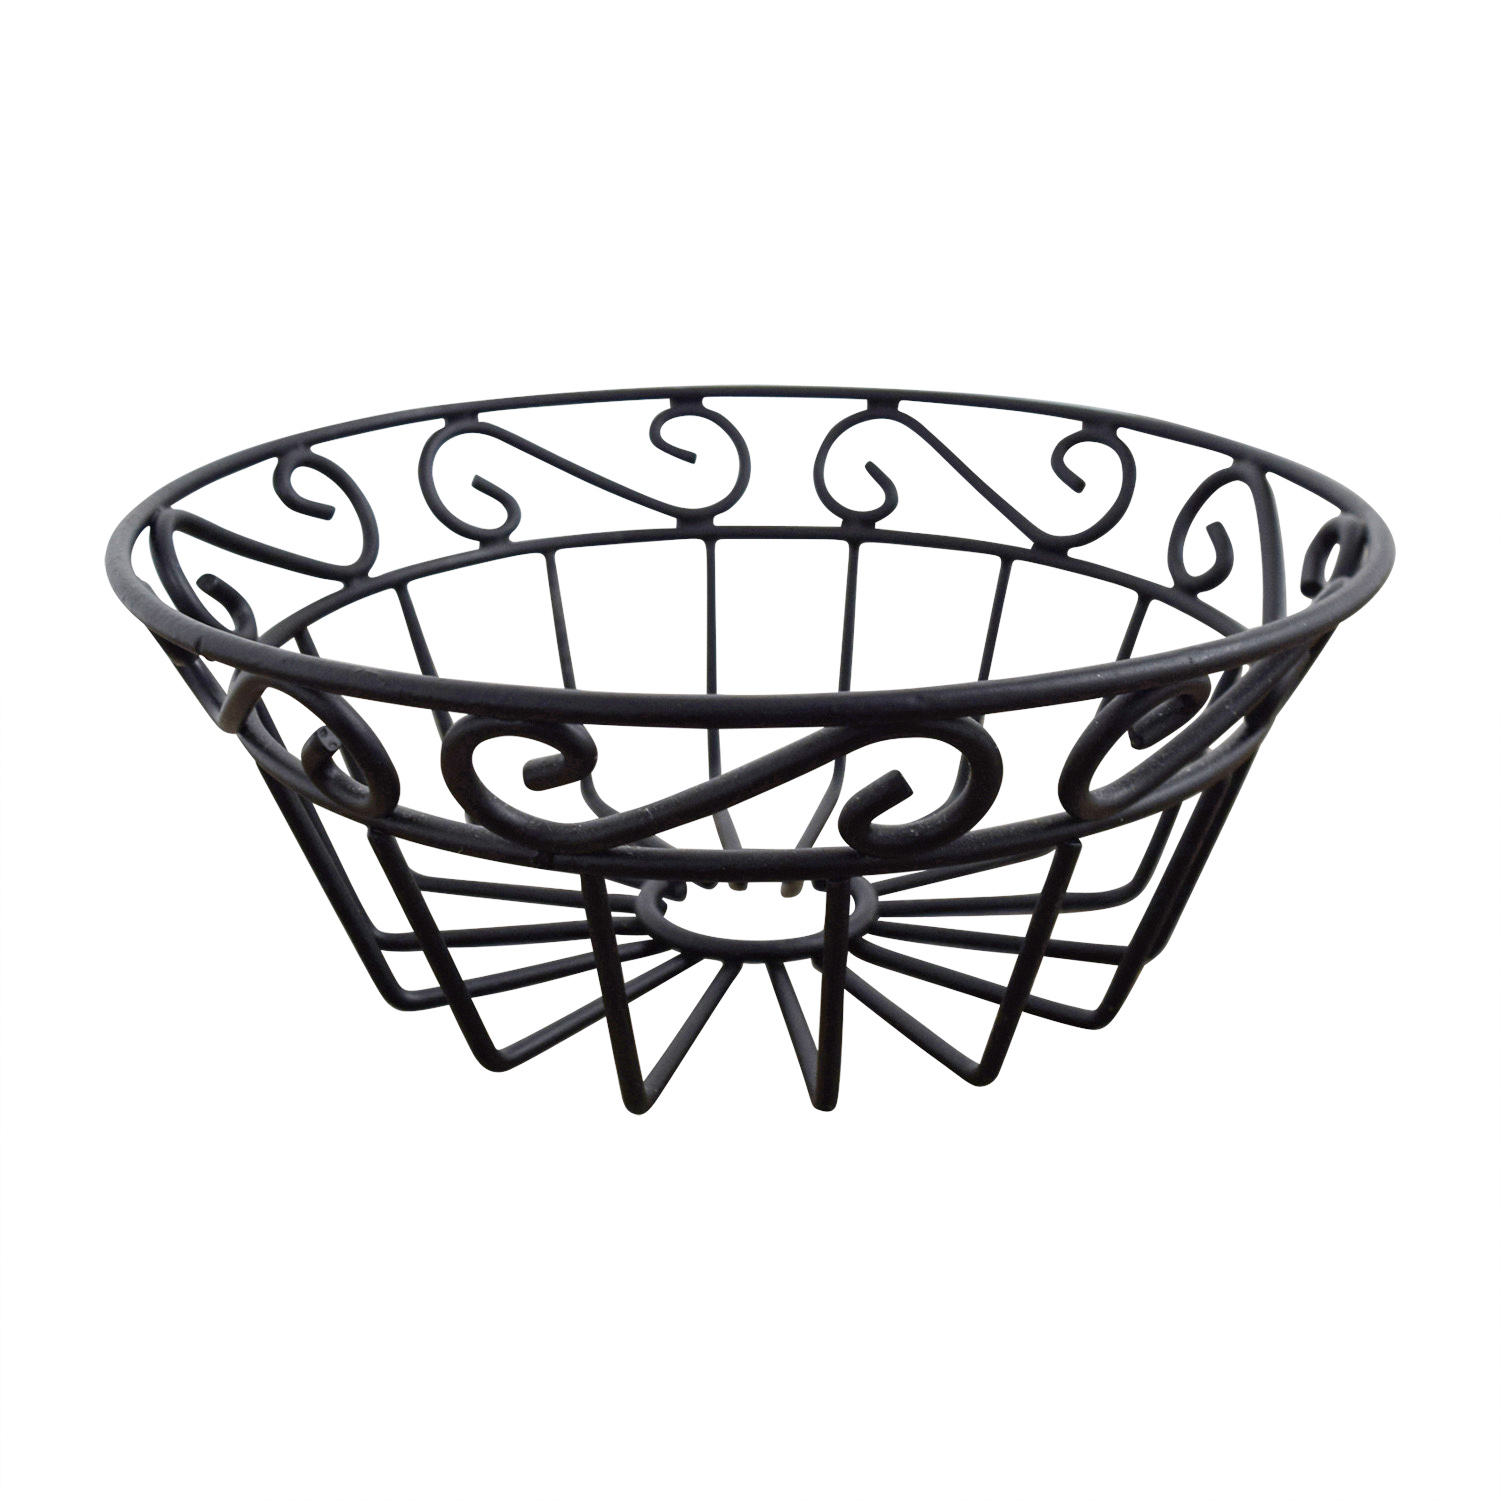 Macys Macys Black Metal Fruit Bowl Black